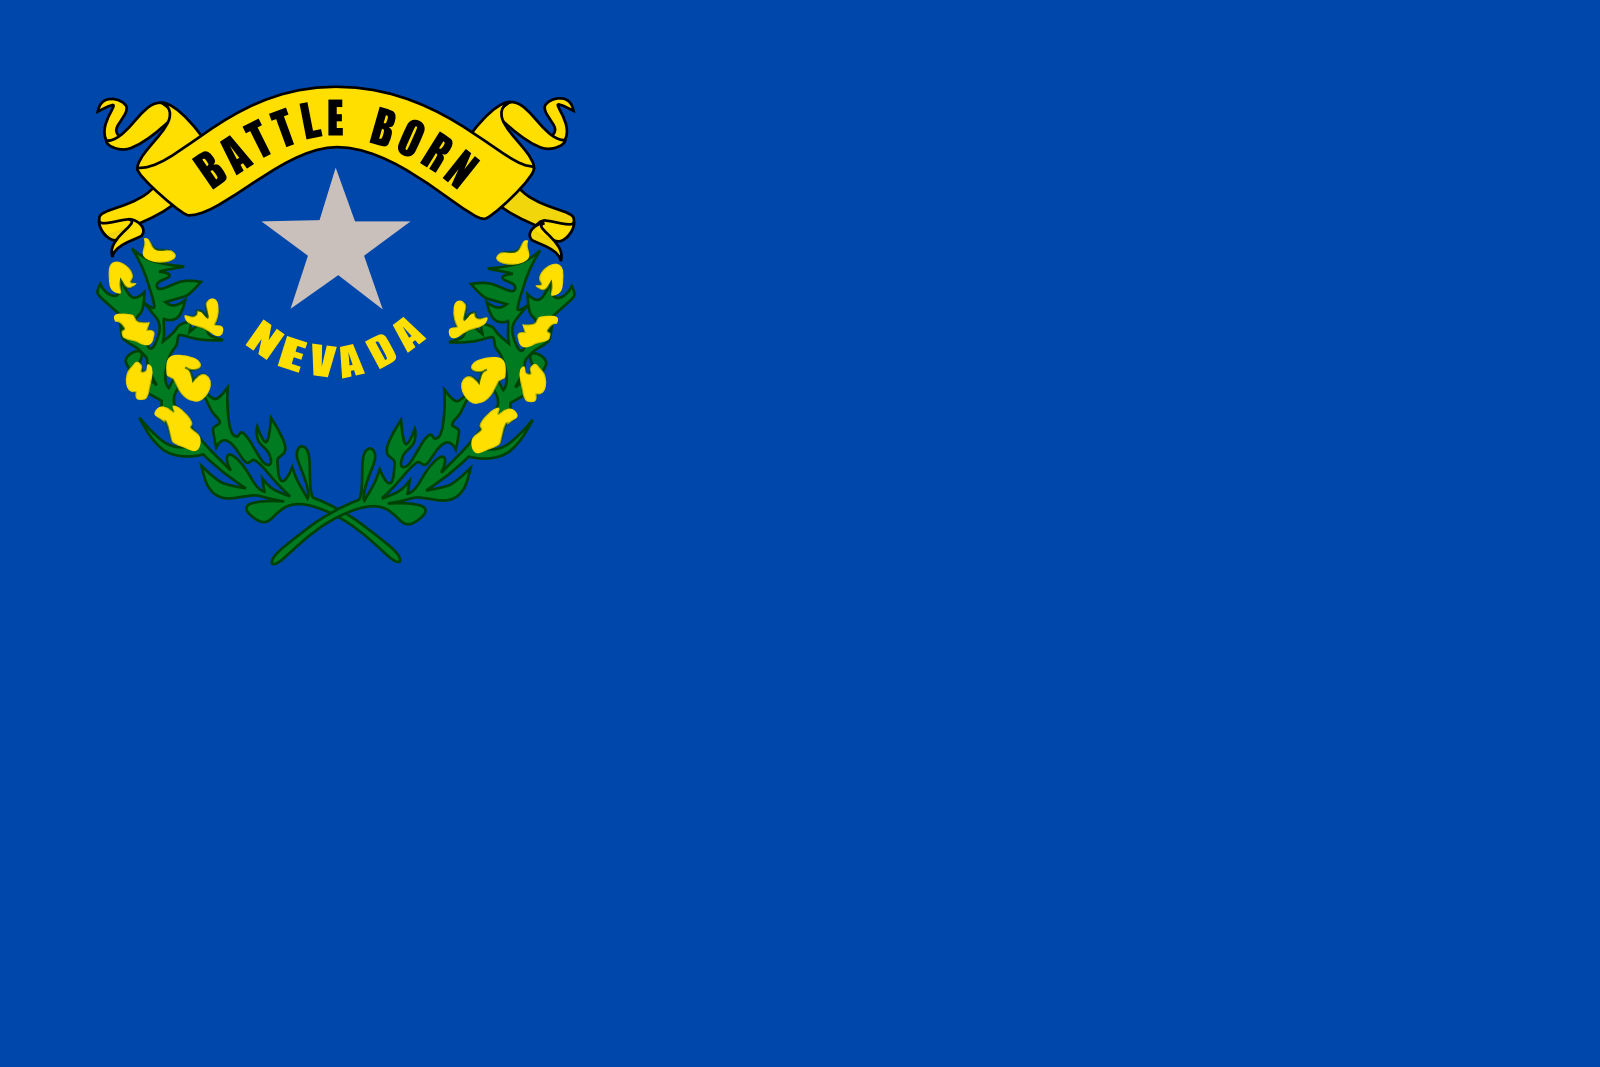 Who is the patron saint of Nevada?